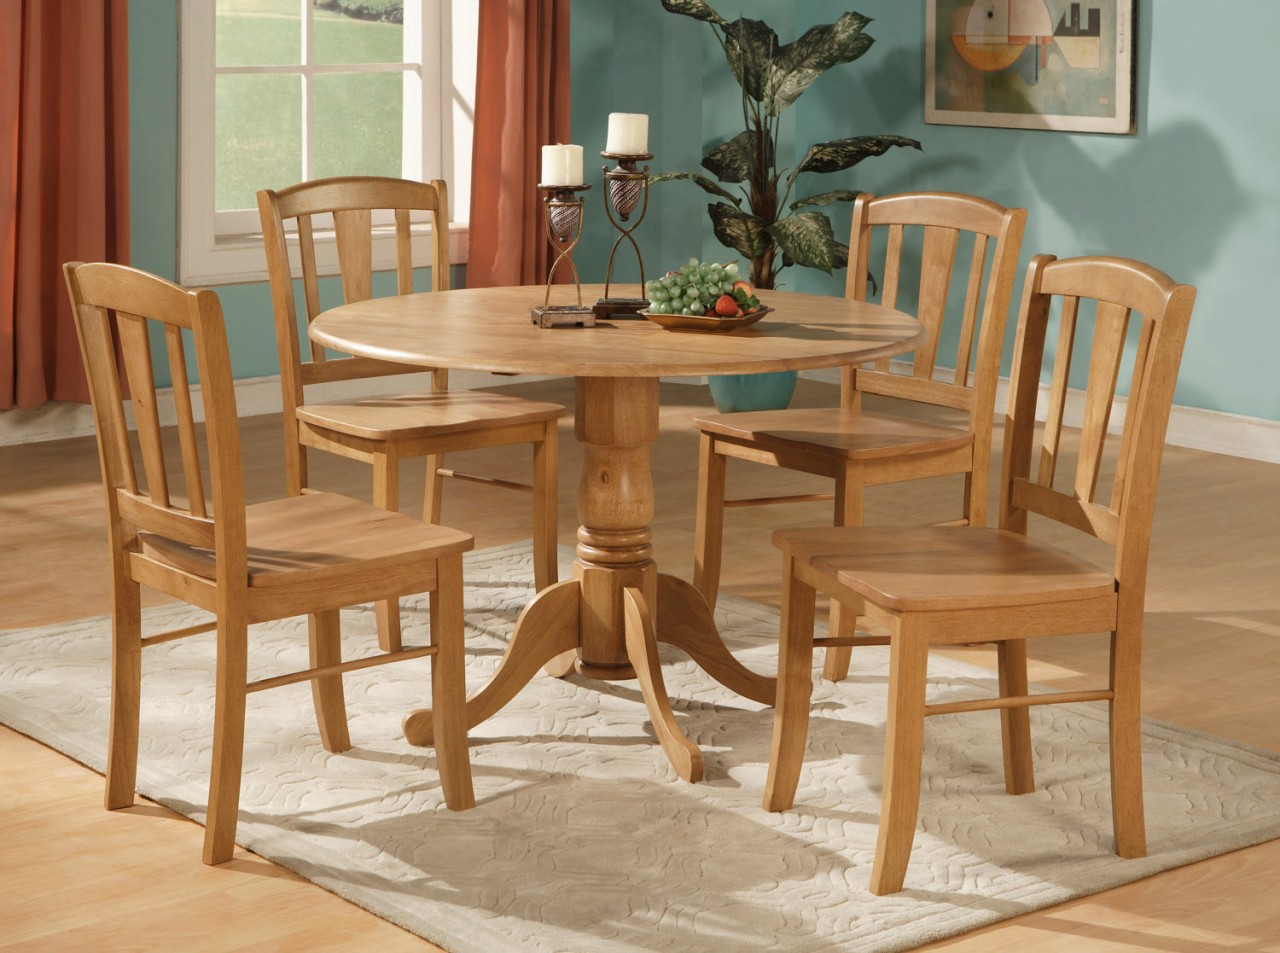 Round Kitchen Table For 8 Round Oak Kitchen Table And Chairs Kitchen Ideas